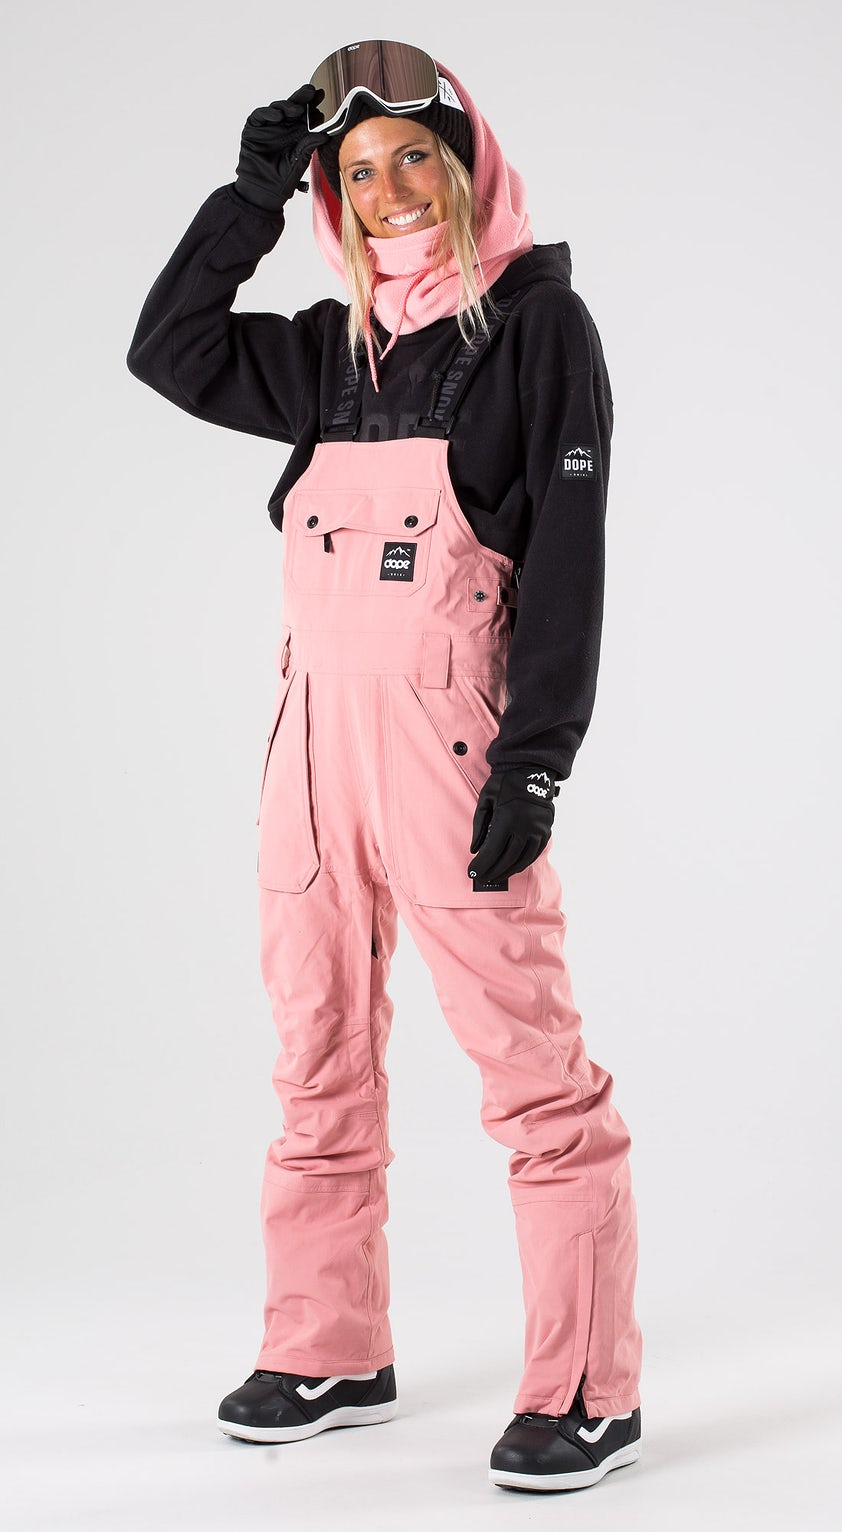 Women S Snowboard Clothing Free Delivery Ridestore